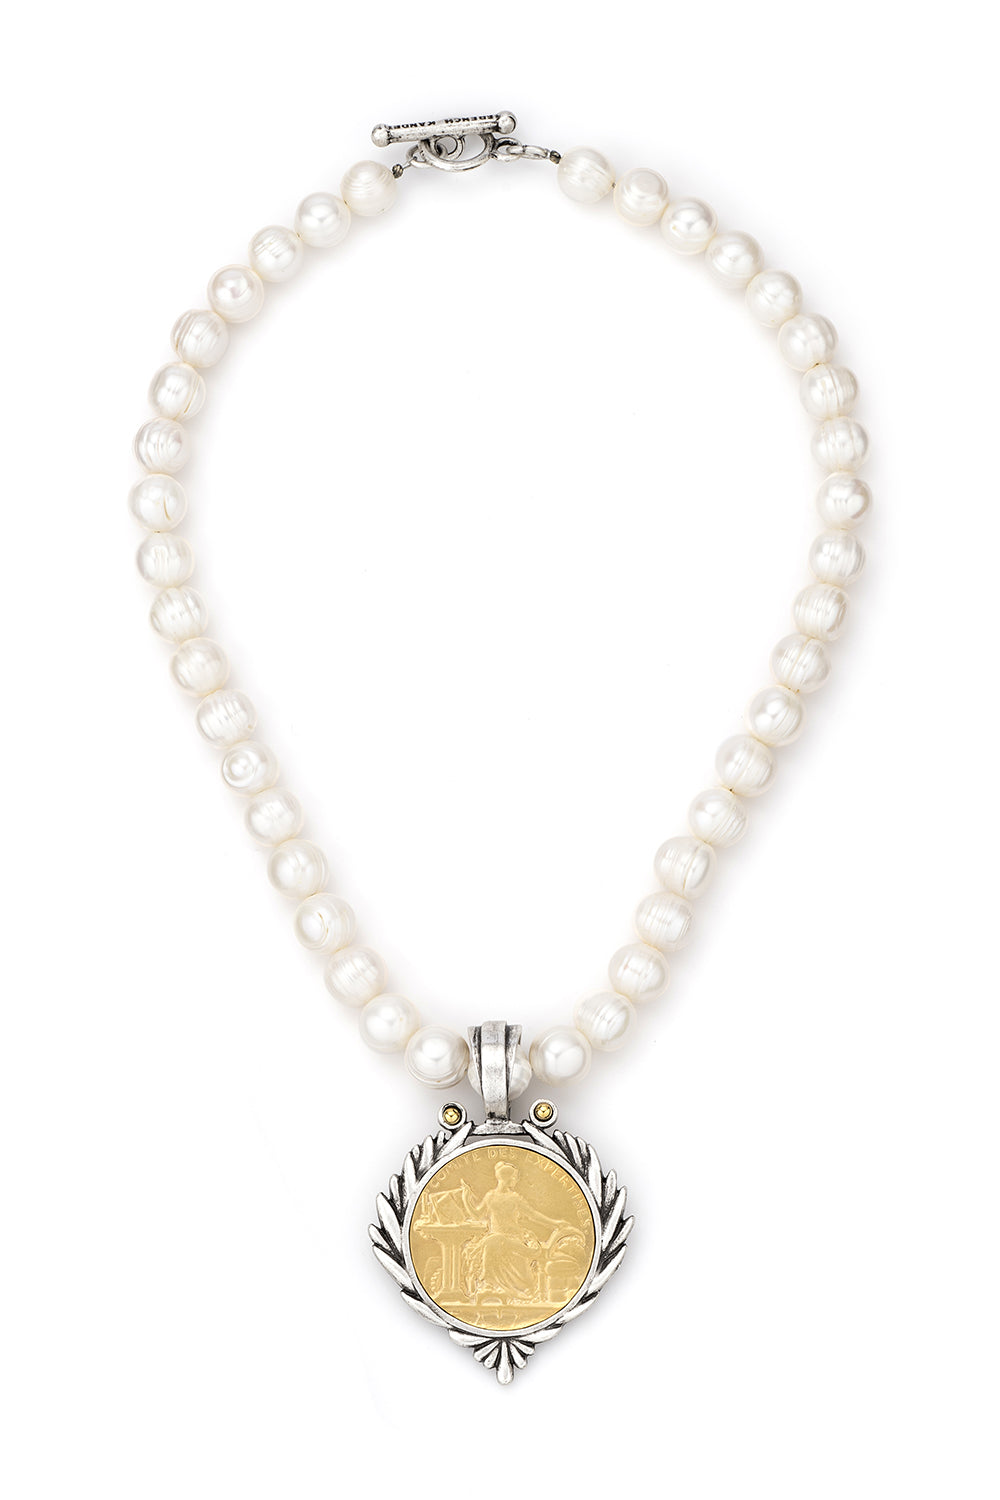 Gold Comite Medallion with Pearls